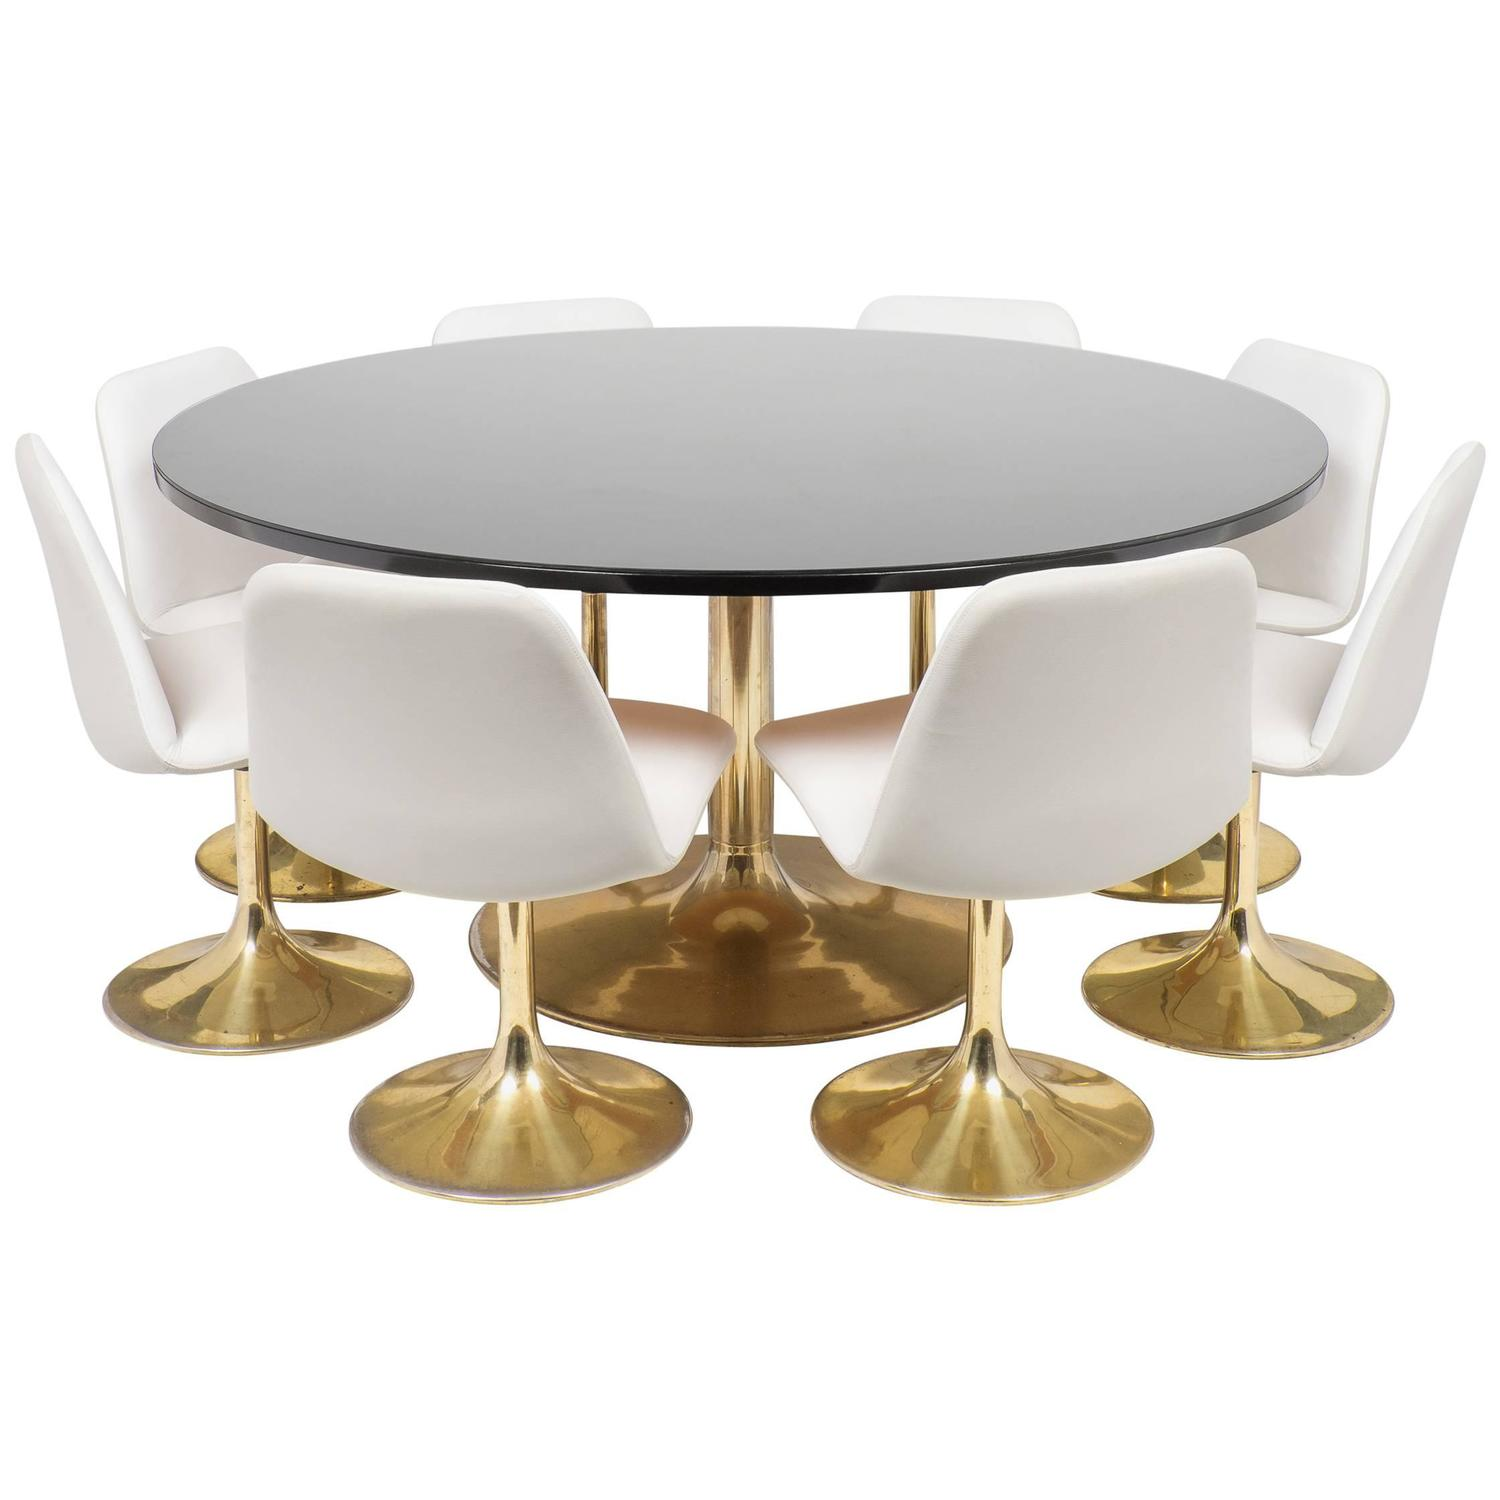 Tulip table and chair dining set at 1stdibs for Table and chairs furniture